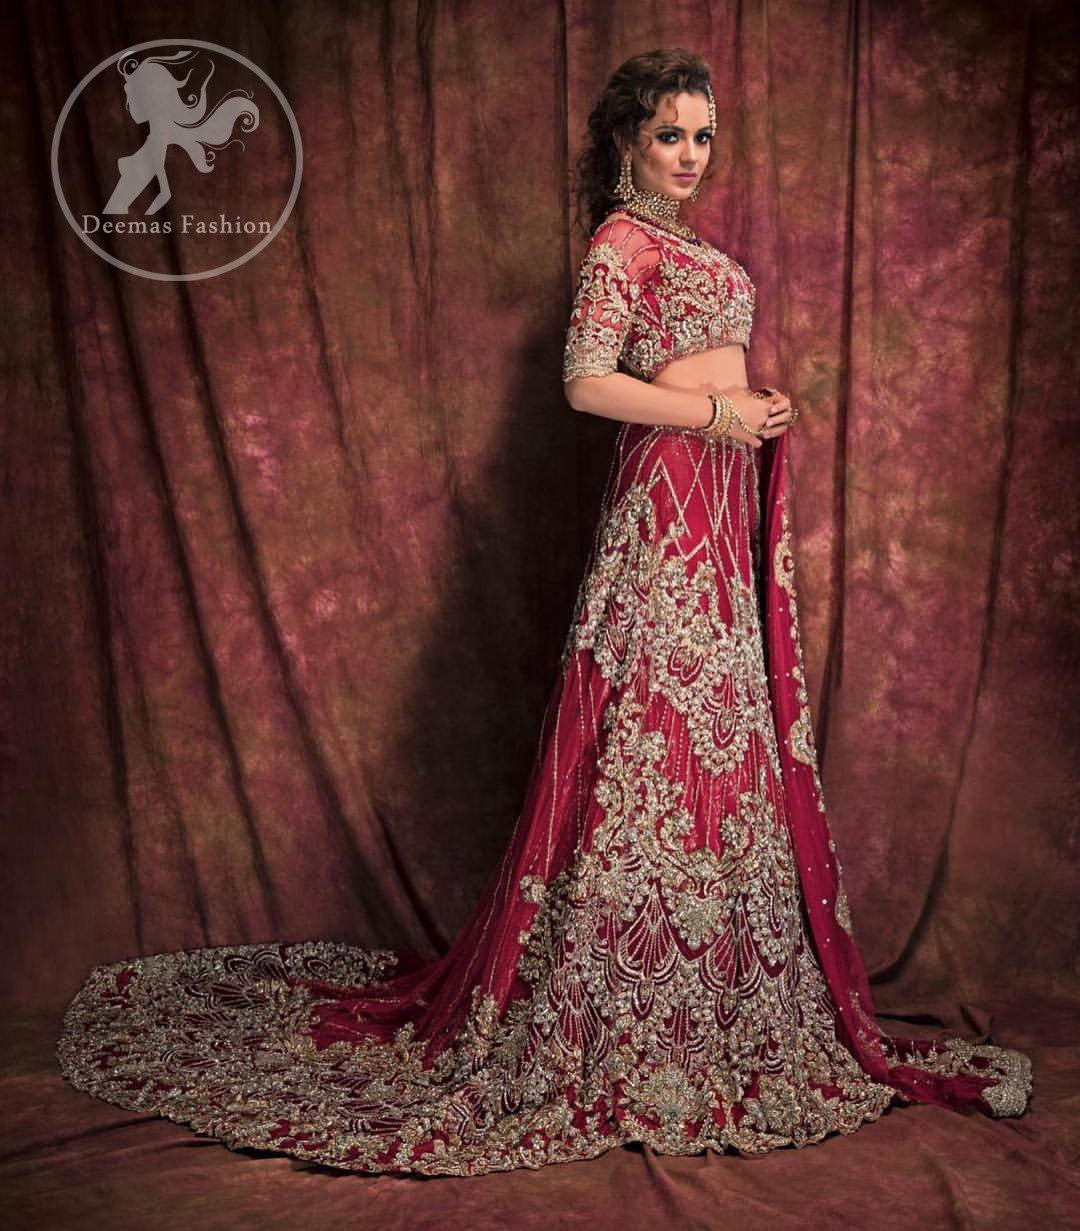 Exude glamour in this trendy lehnga with light golden and silver embroidery instantly draws attention. The blouse is enhanced with golden and silver kora, dabka, tilla, swarovski crystals and zardozi embroidery and a beautiful embellished motifs on the sleeves. Complete the look with artfully coordinated lehenga which is ornamented with a bold and captivating back trail design with a traditional intricate embroidered. The dupatta incorporates beautifully designed borders on all four sides and scattered sequins on the ground that gives the right amount of glamour to the outfit.